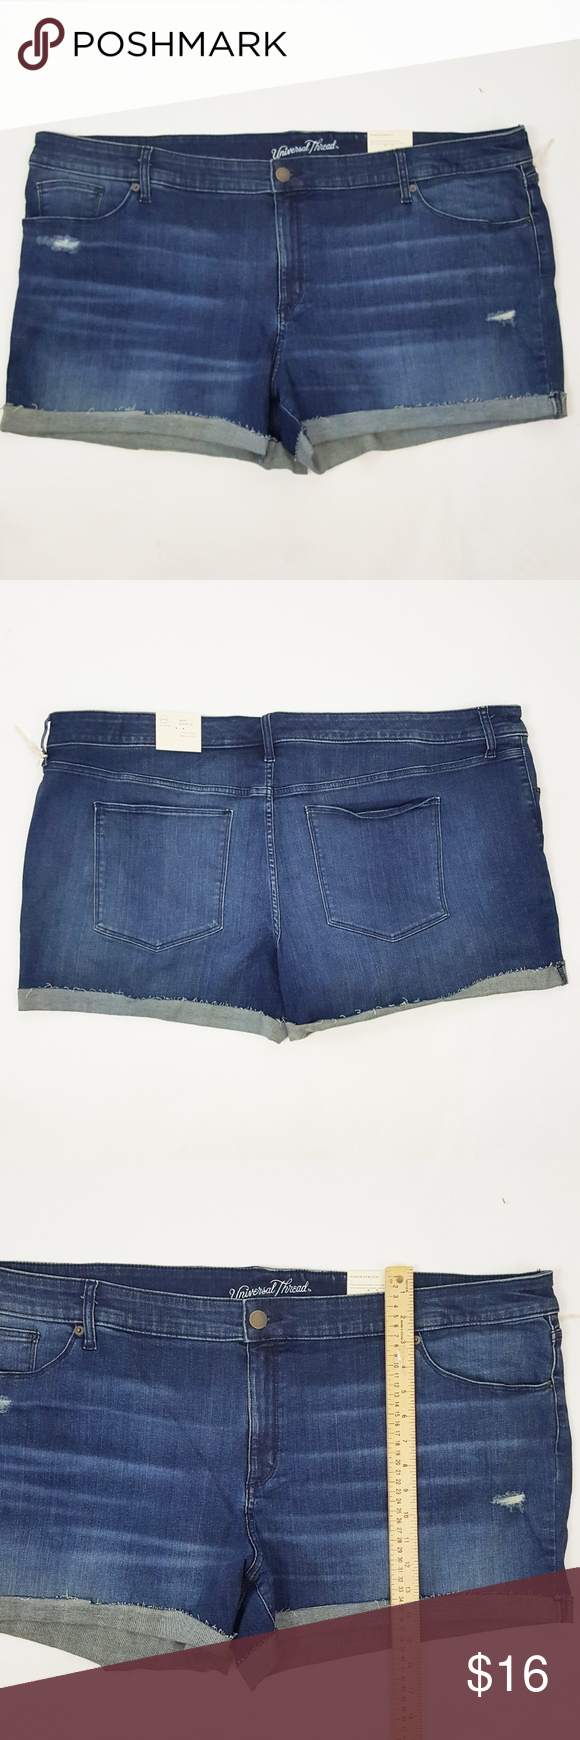 NWT Universal Thread Women/'s Plus Size Destructed Midi Jean Shorts with Stretch